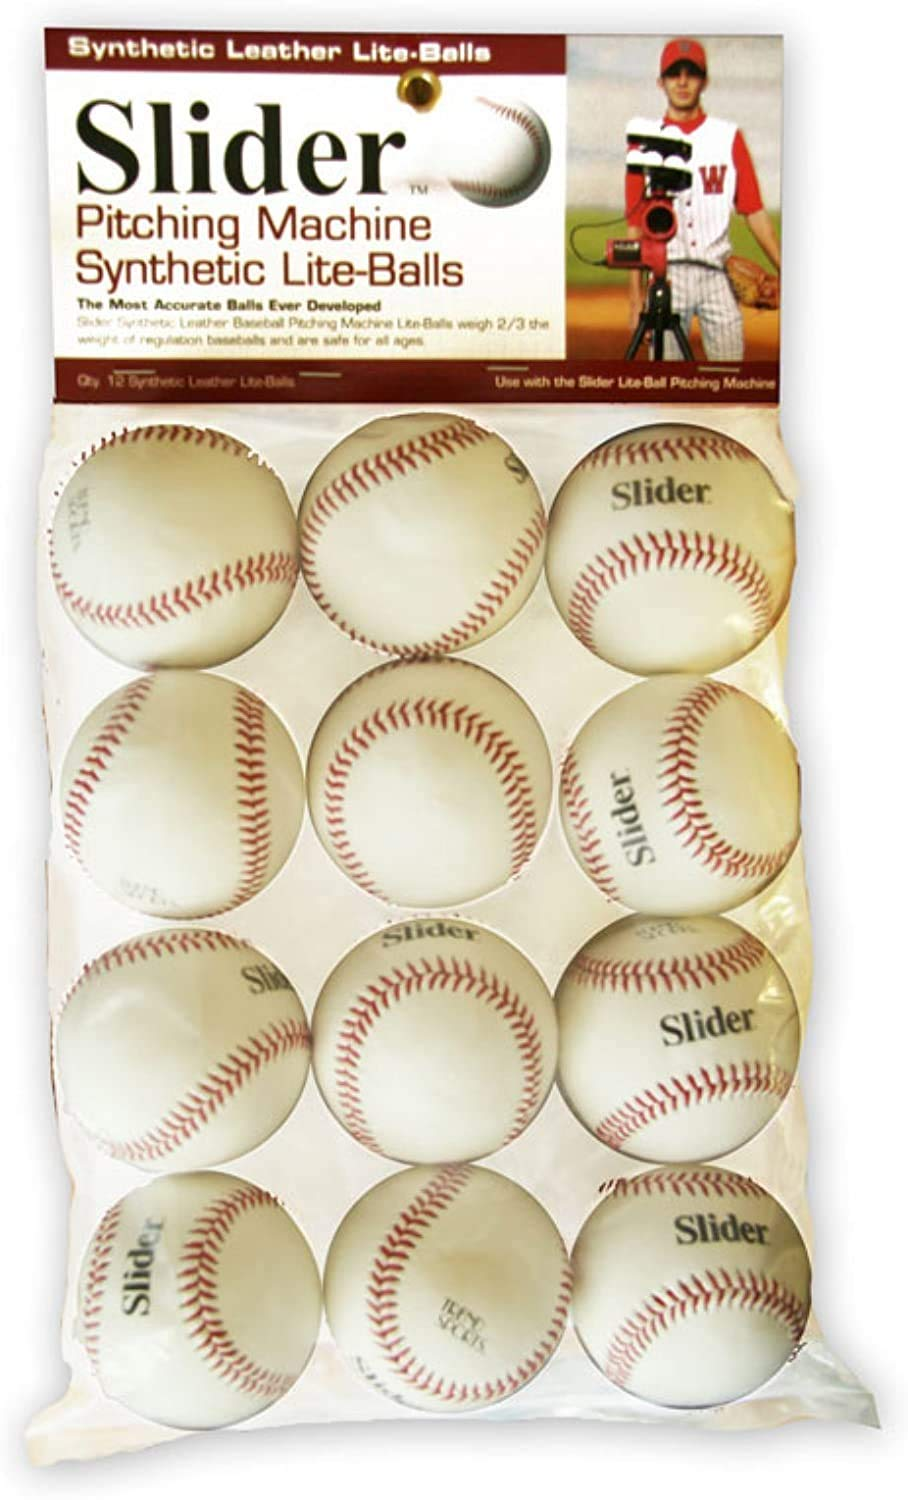 Heater Sports Slider Lite Synthetic Leather Pitching Machine Baseballs by The Dozen